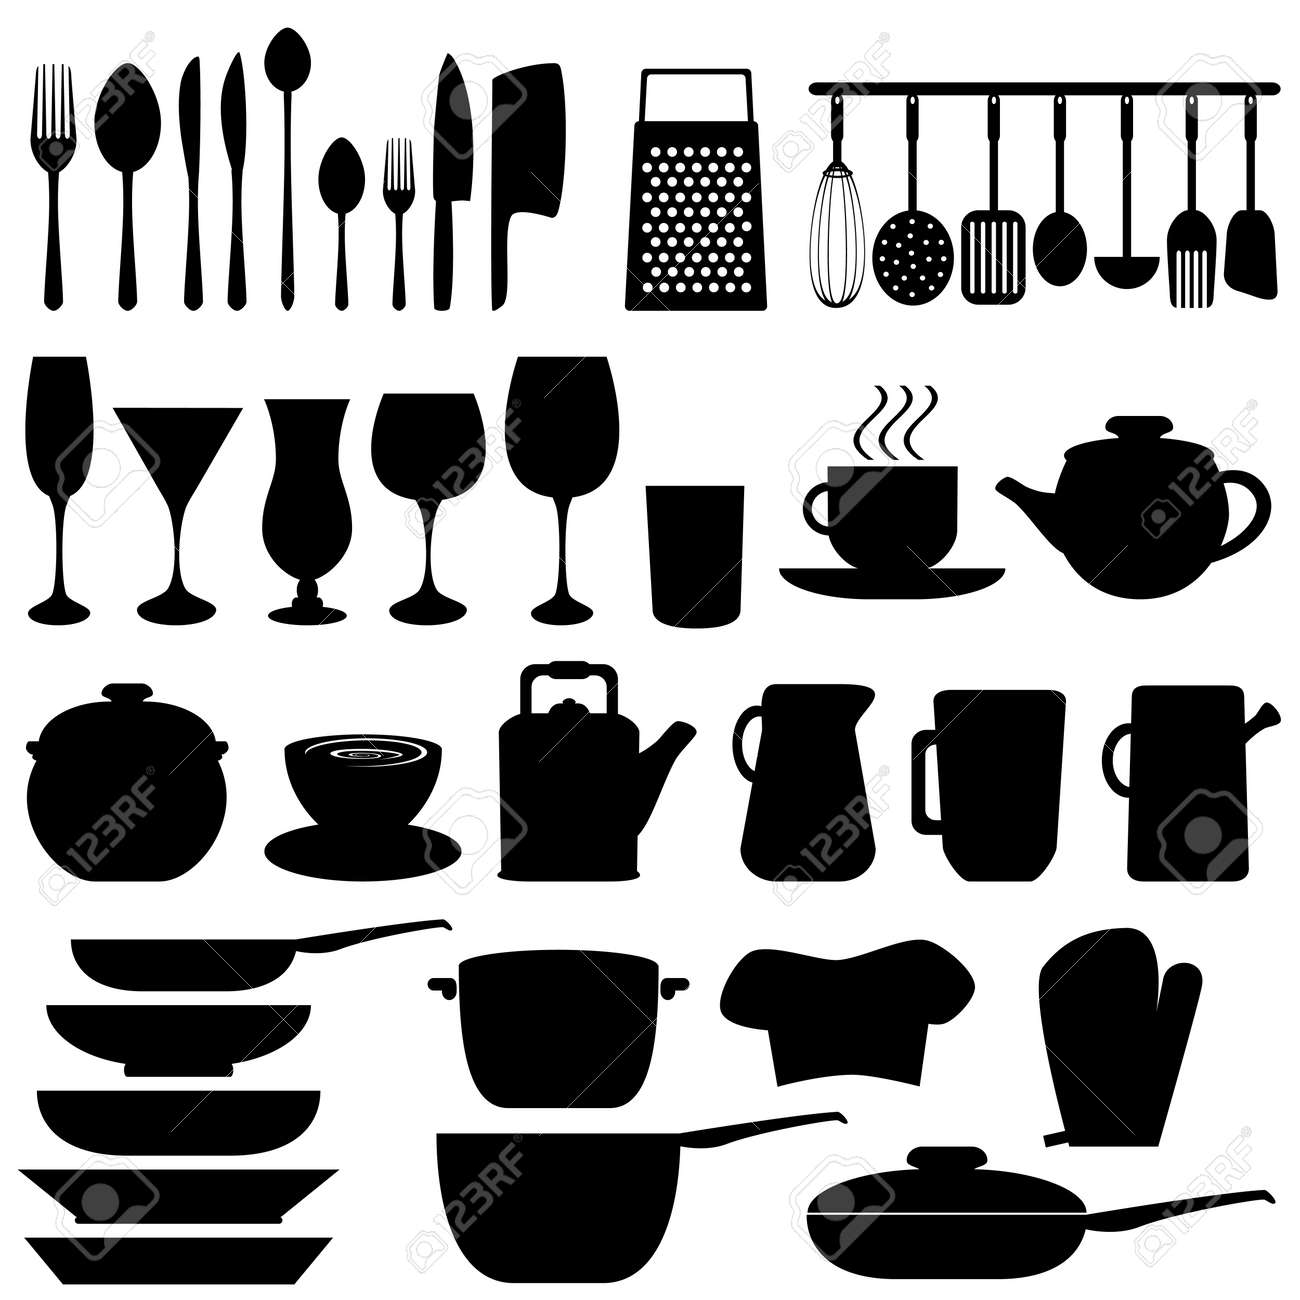 Kitchen objects and utensils in black Stock Vector - 9616545